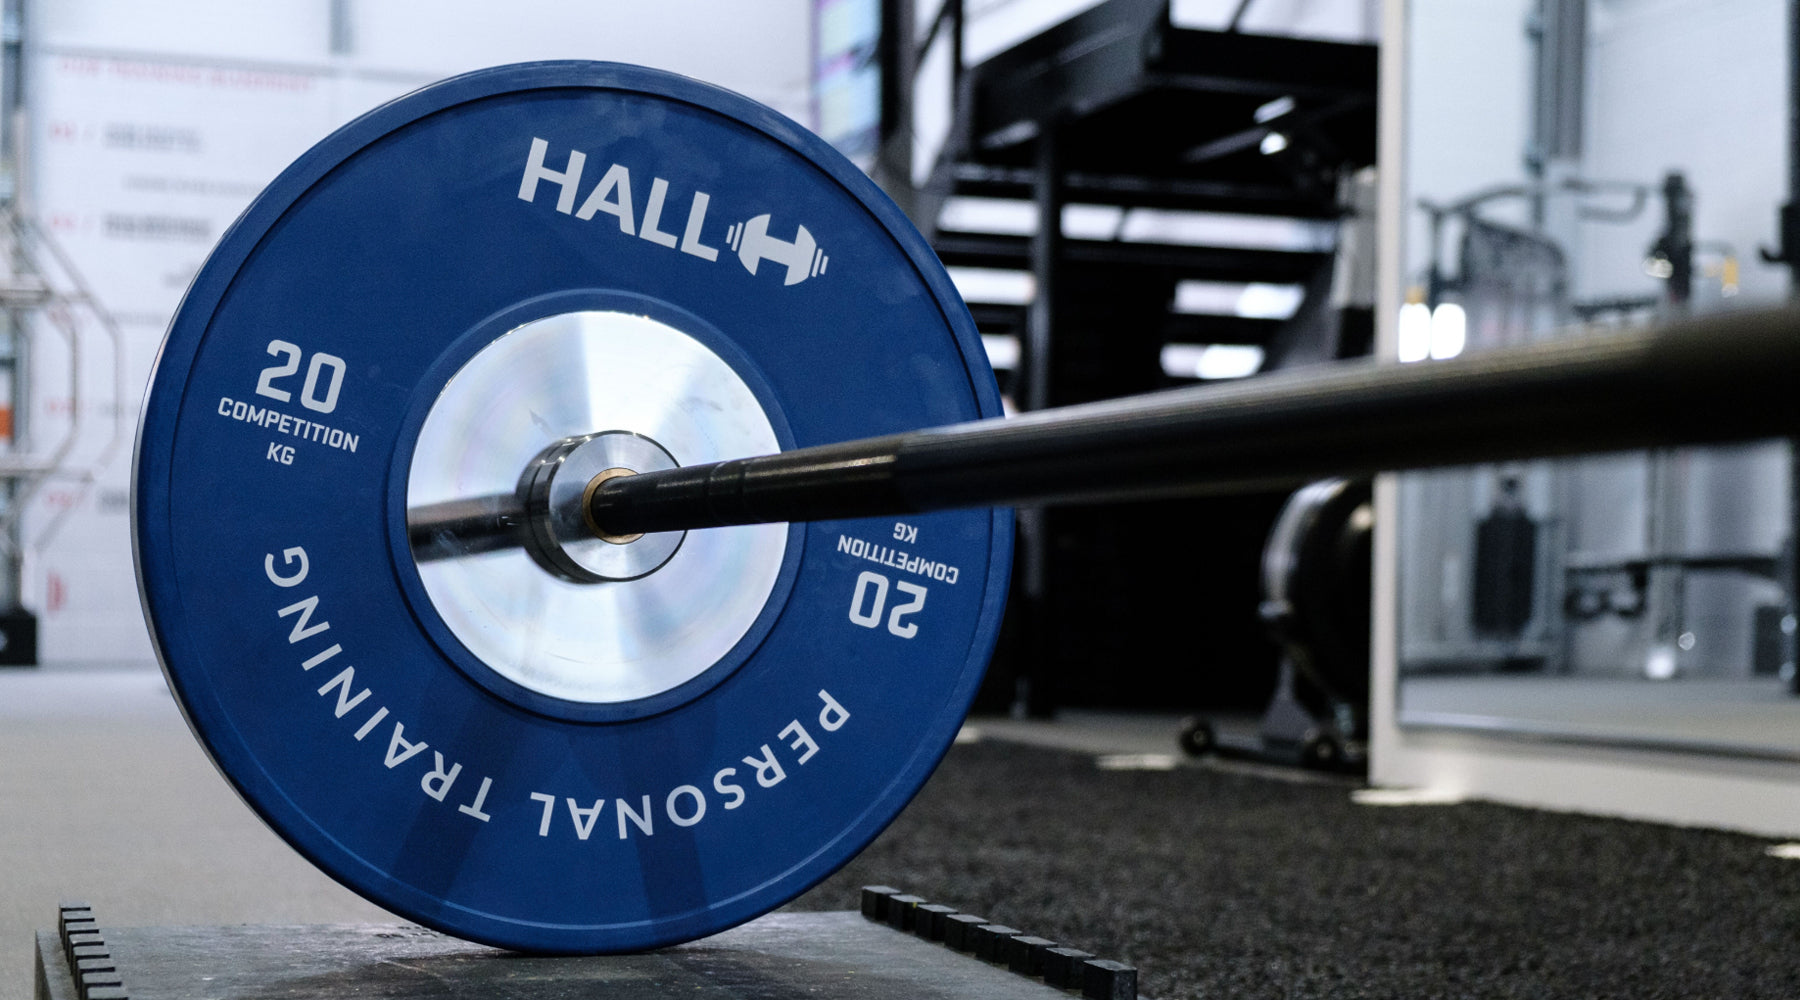 Hall Training Competition Plate